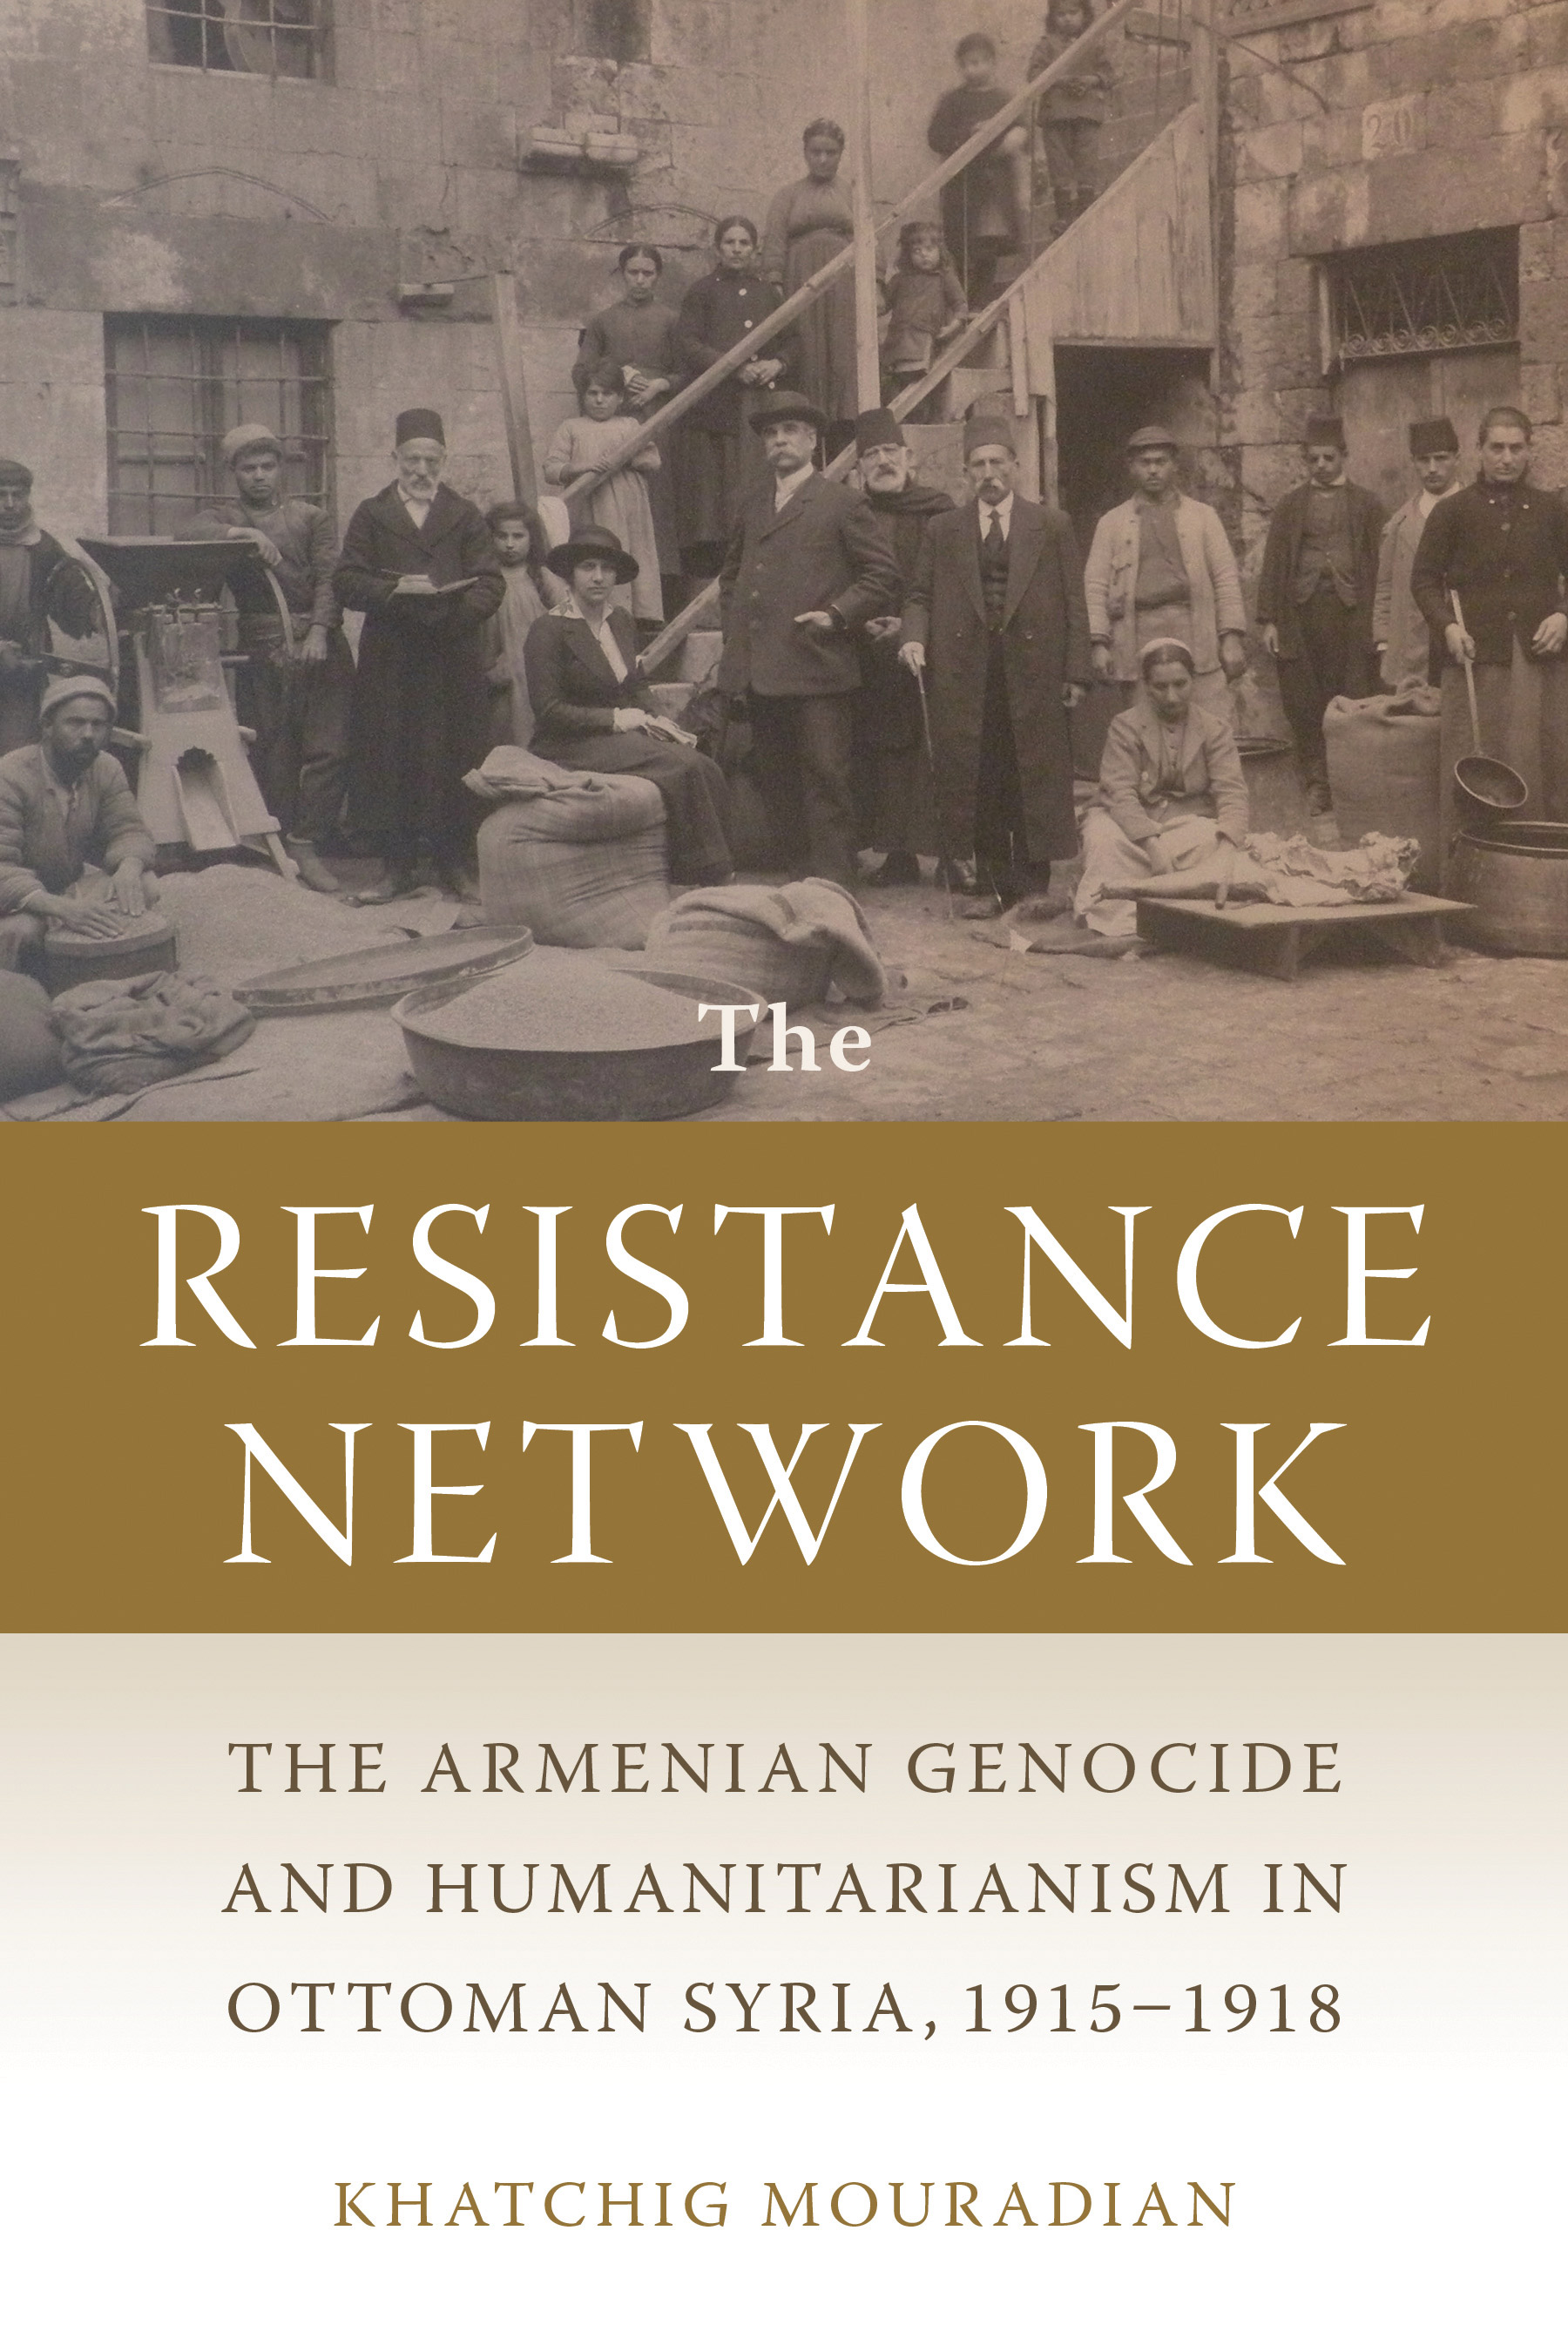 The Resistance Network: The Armenian Genocide and Humanitarianism in Ottoman Syria, 1915–1918